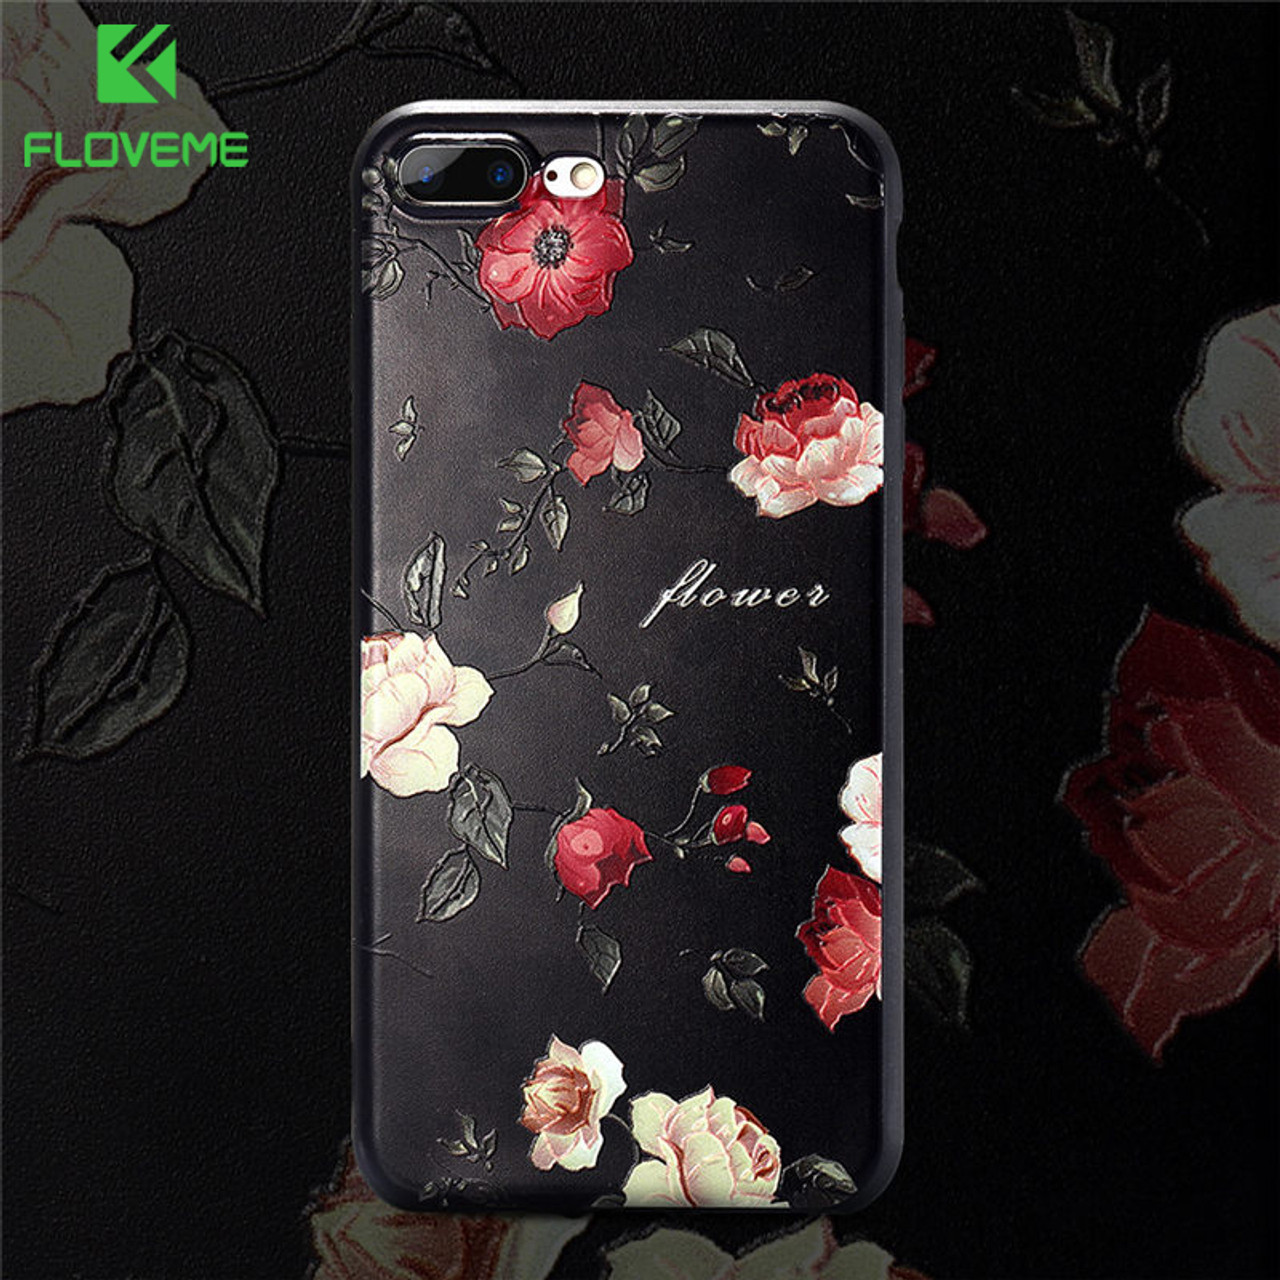 separation shoes cb8b3 7e565 FLOVEME 3D Flower Soft Phone Case For iPhone 6 6s Relief Rose Silicon Cases  For iPhone 7 5s 5 8 8 Plus Cute Floral Cover Capinha